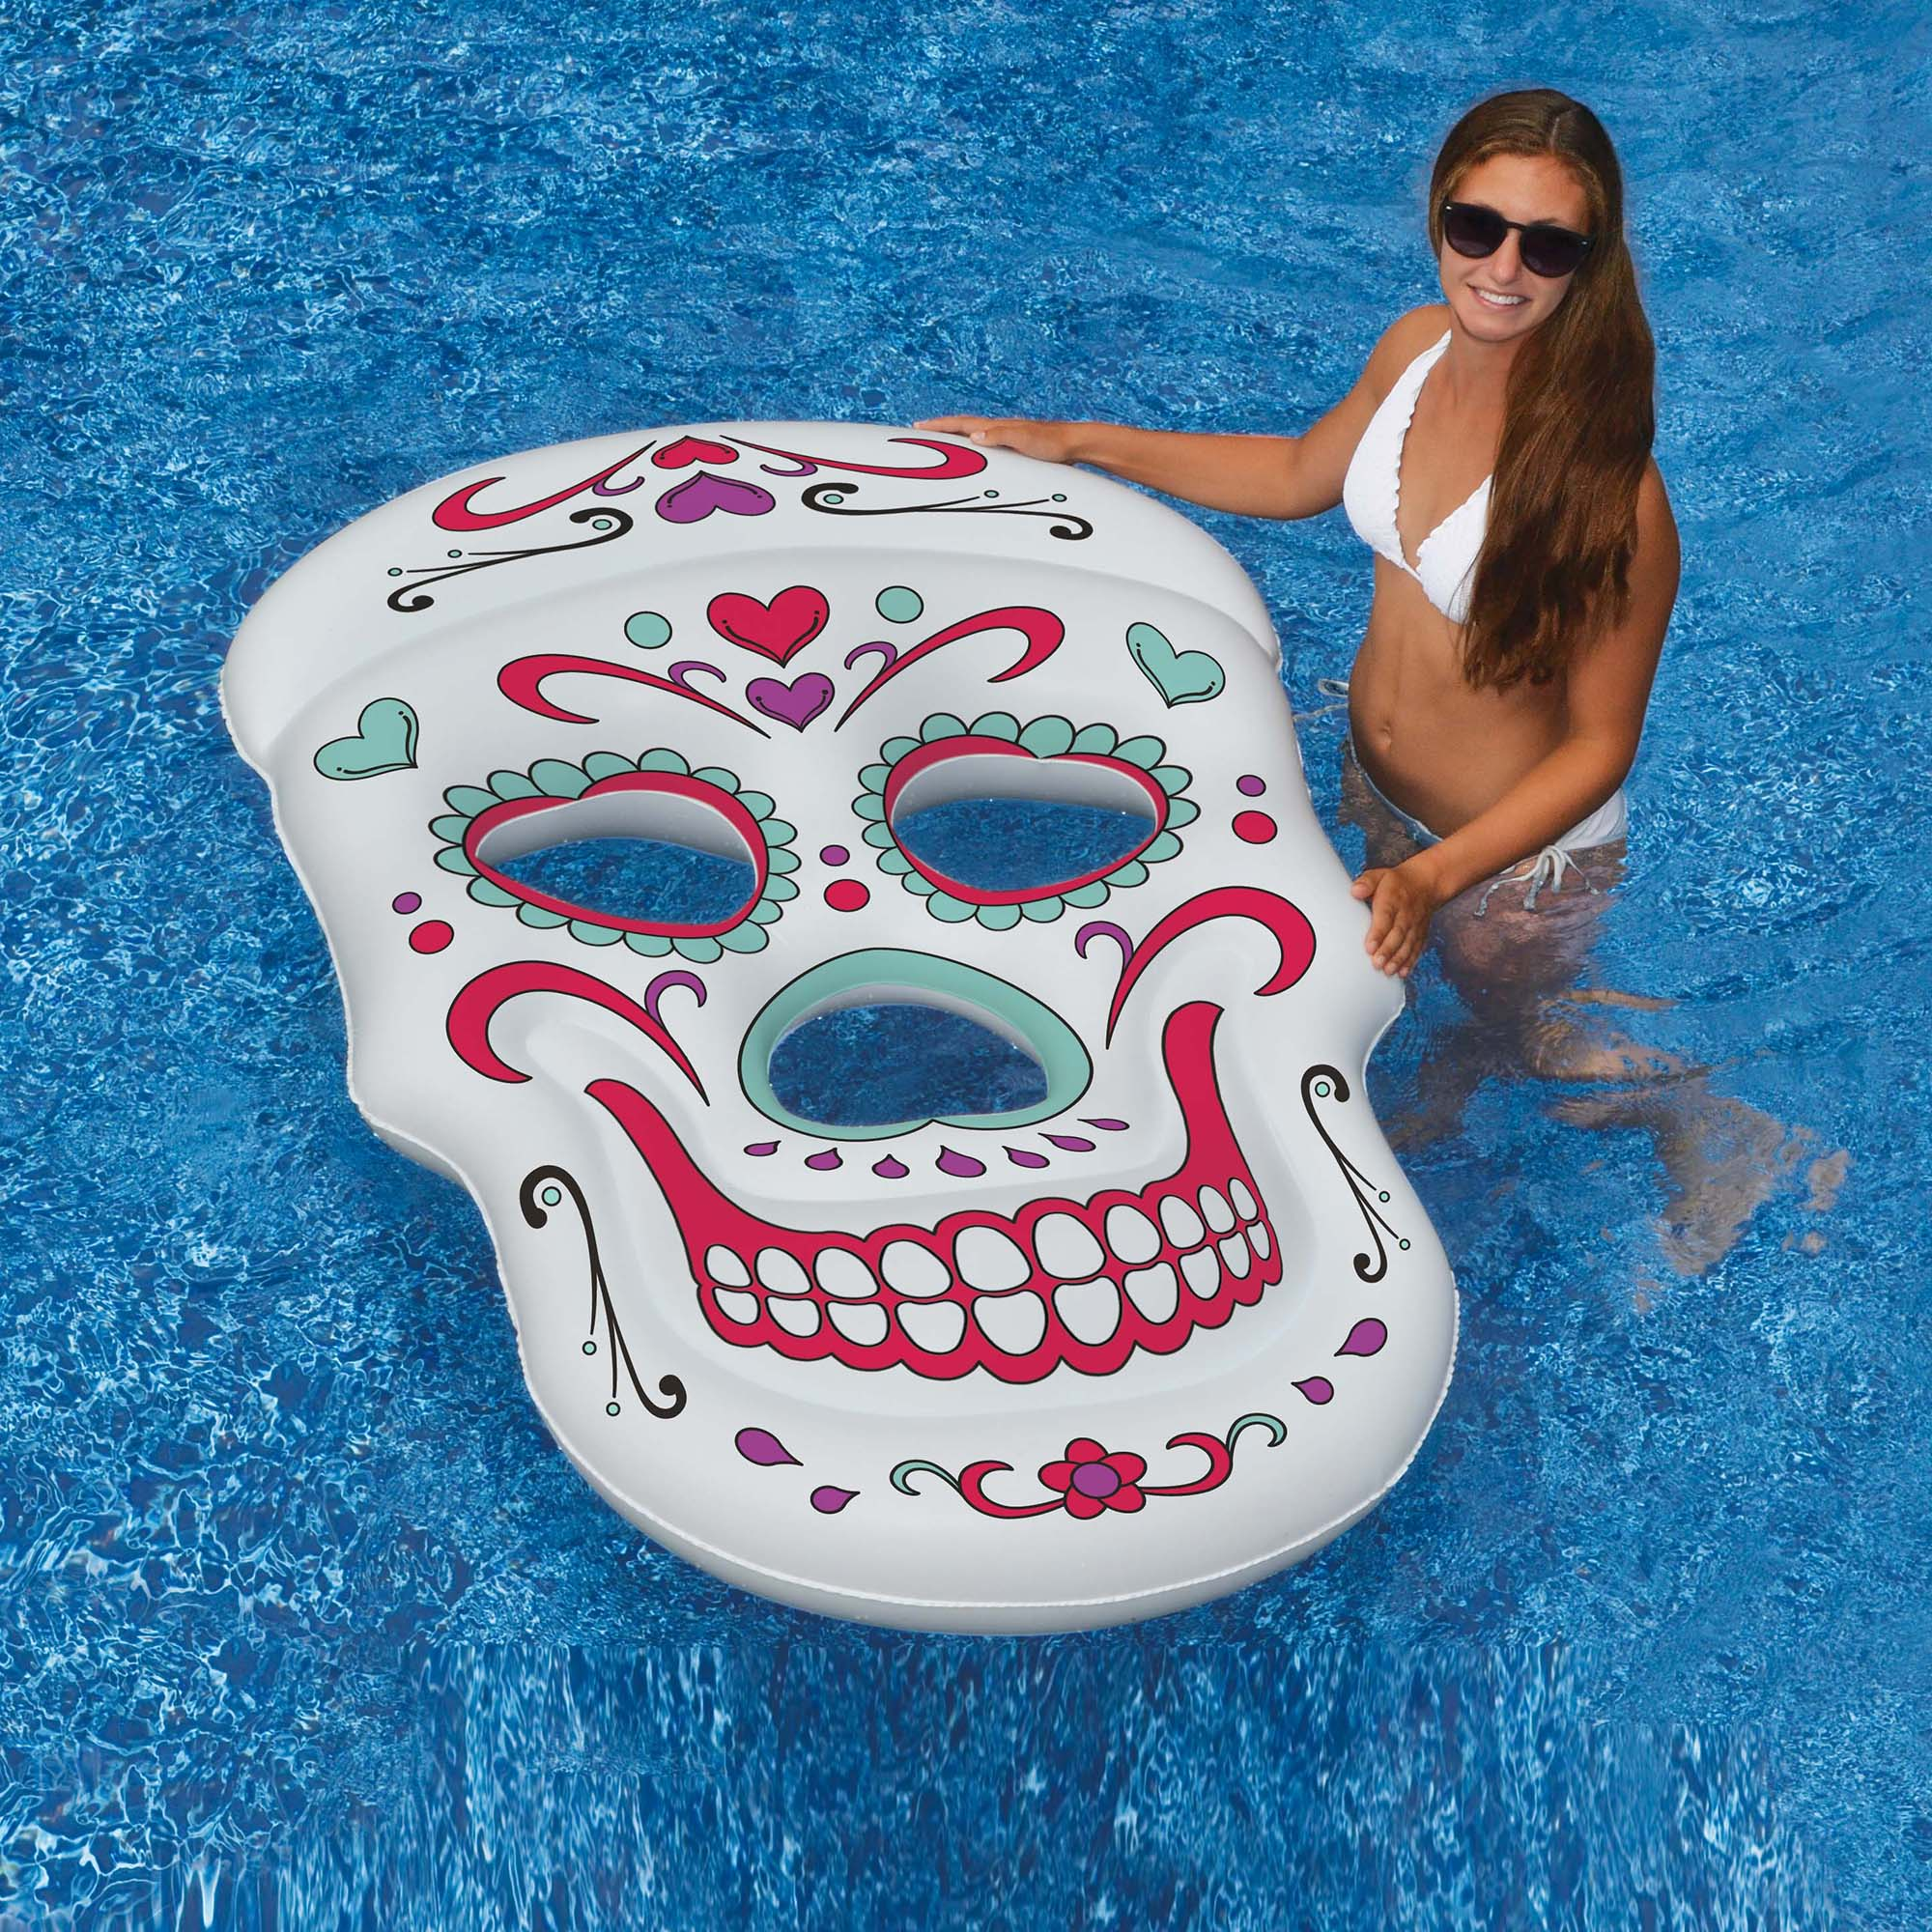 Swimline Sugar Skull 62-in x 40-in Inflatable Pool Float by Blue Wave